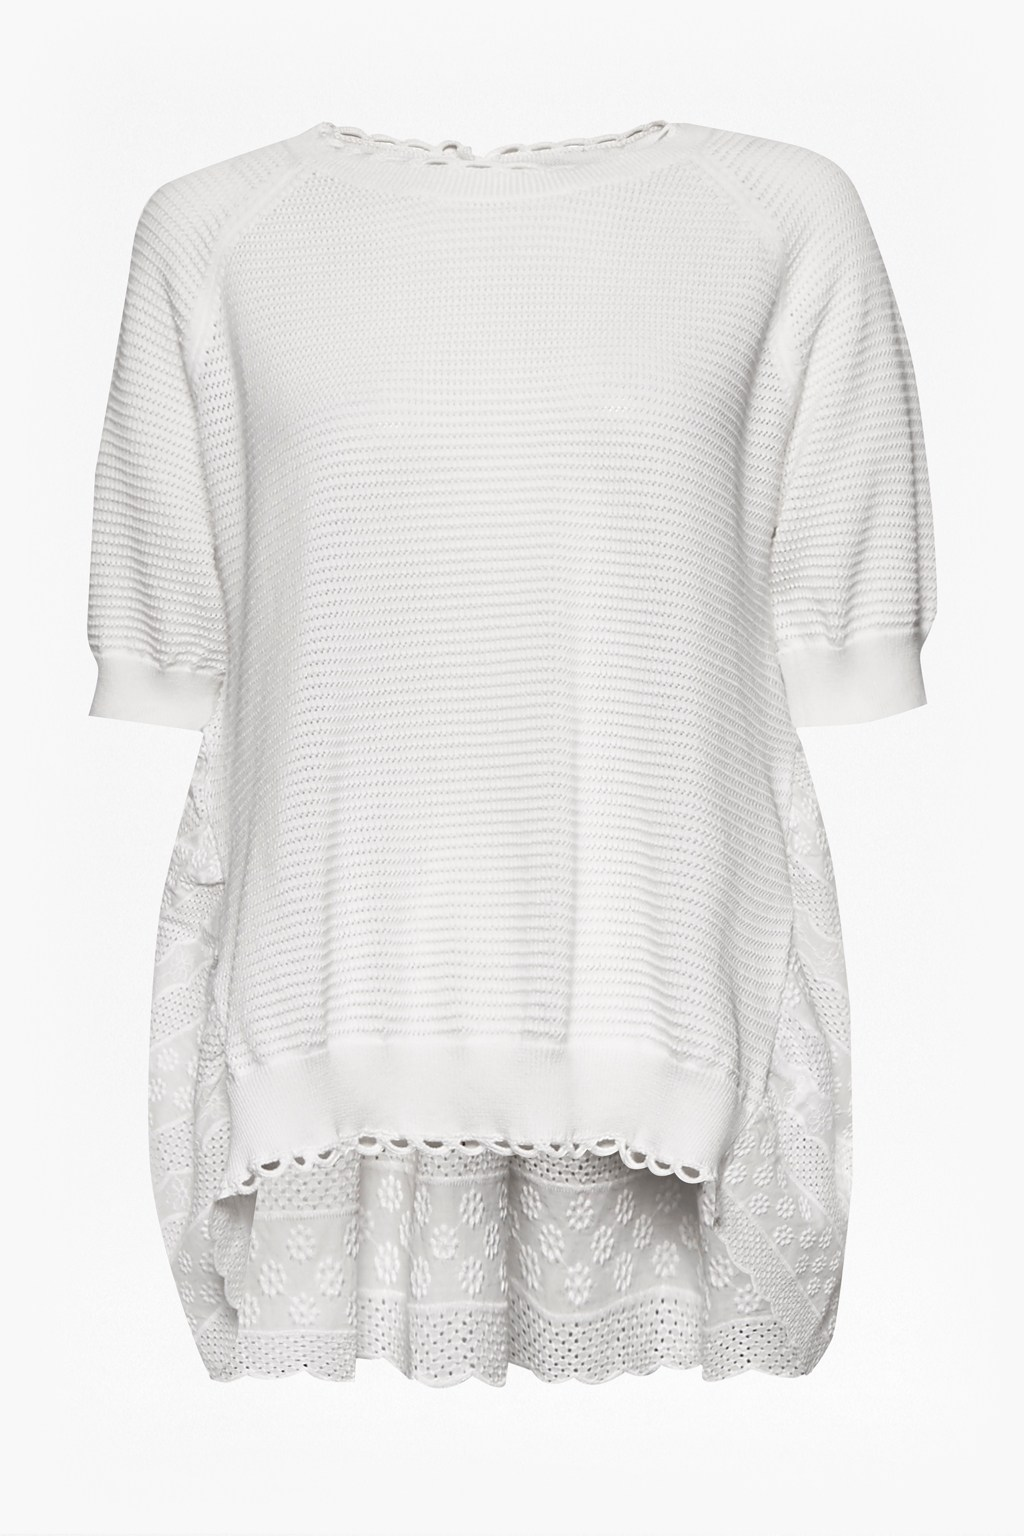 67f06a27c4346f loading images... Celia Scallop Knitted Jumper. loading images.